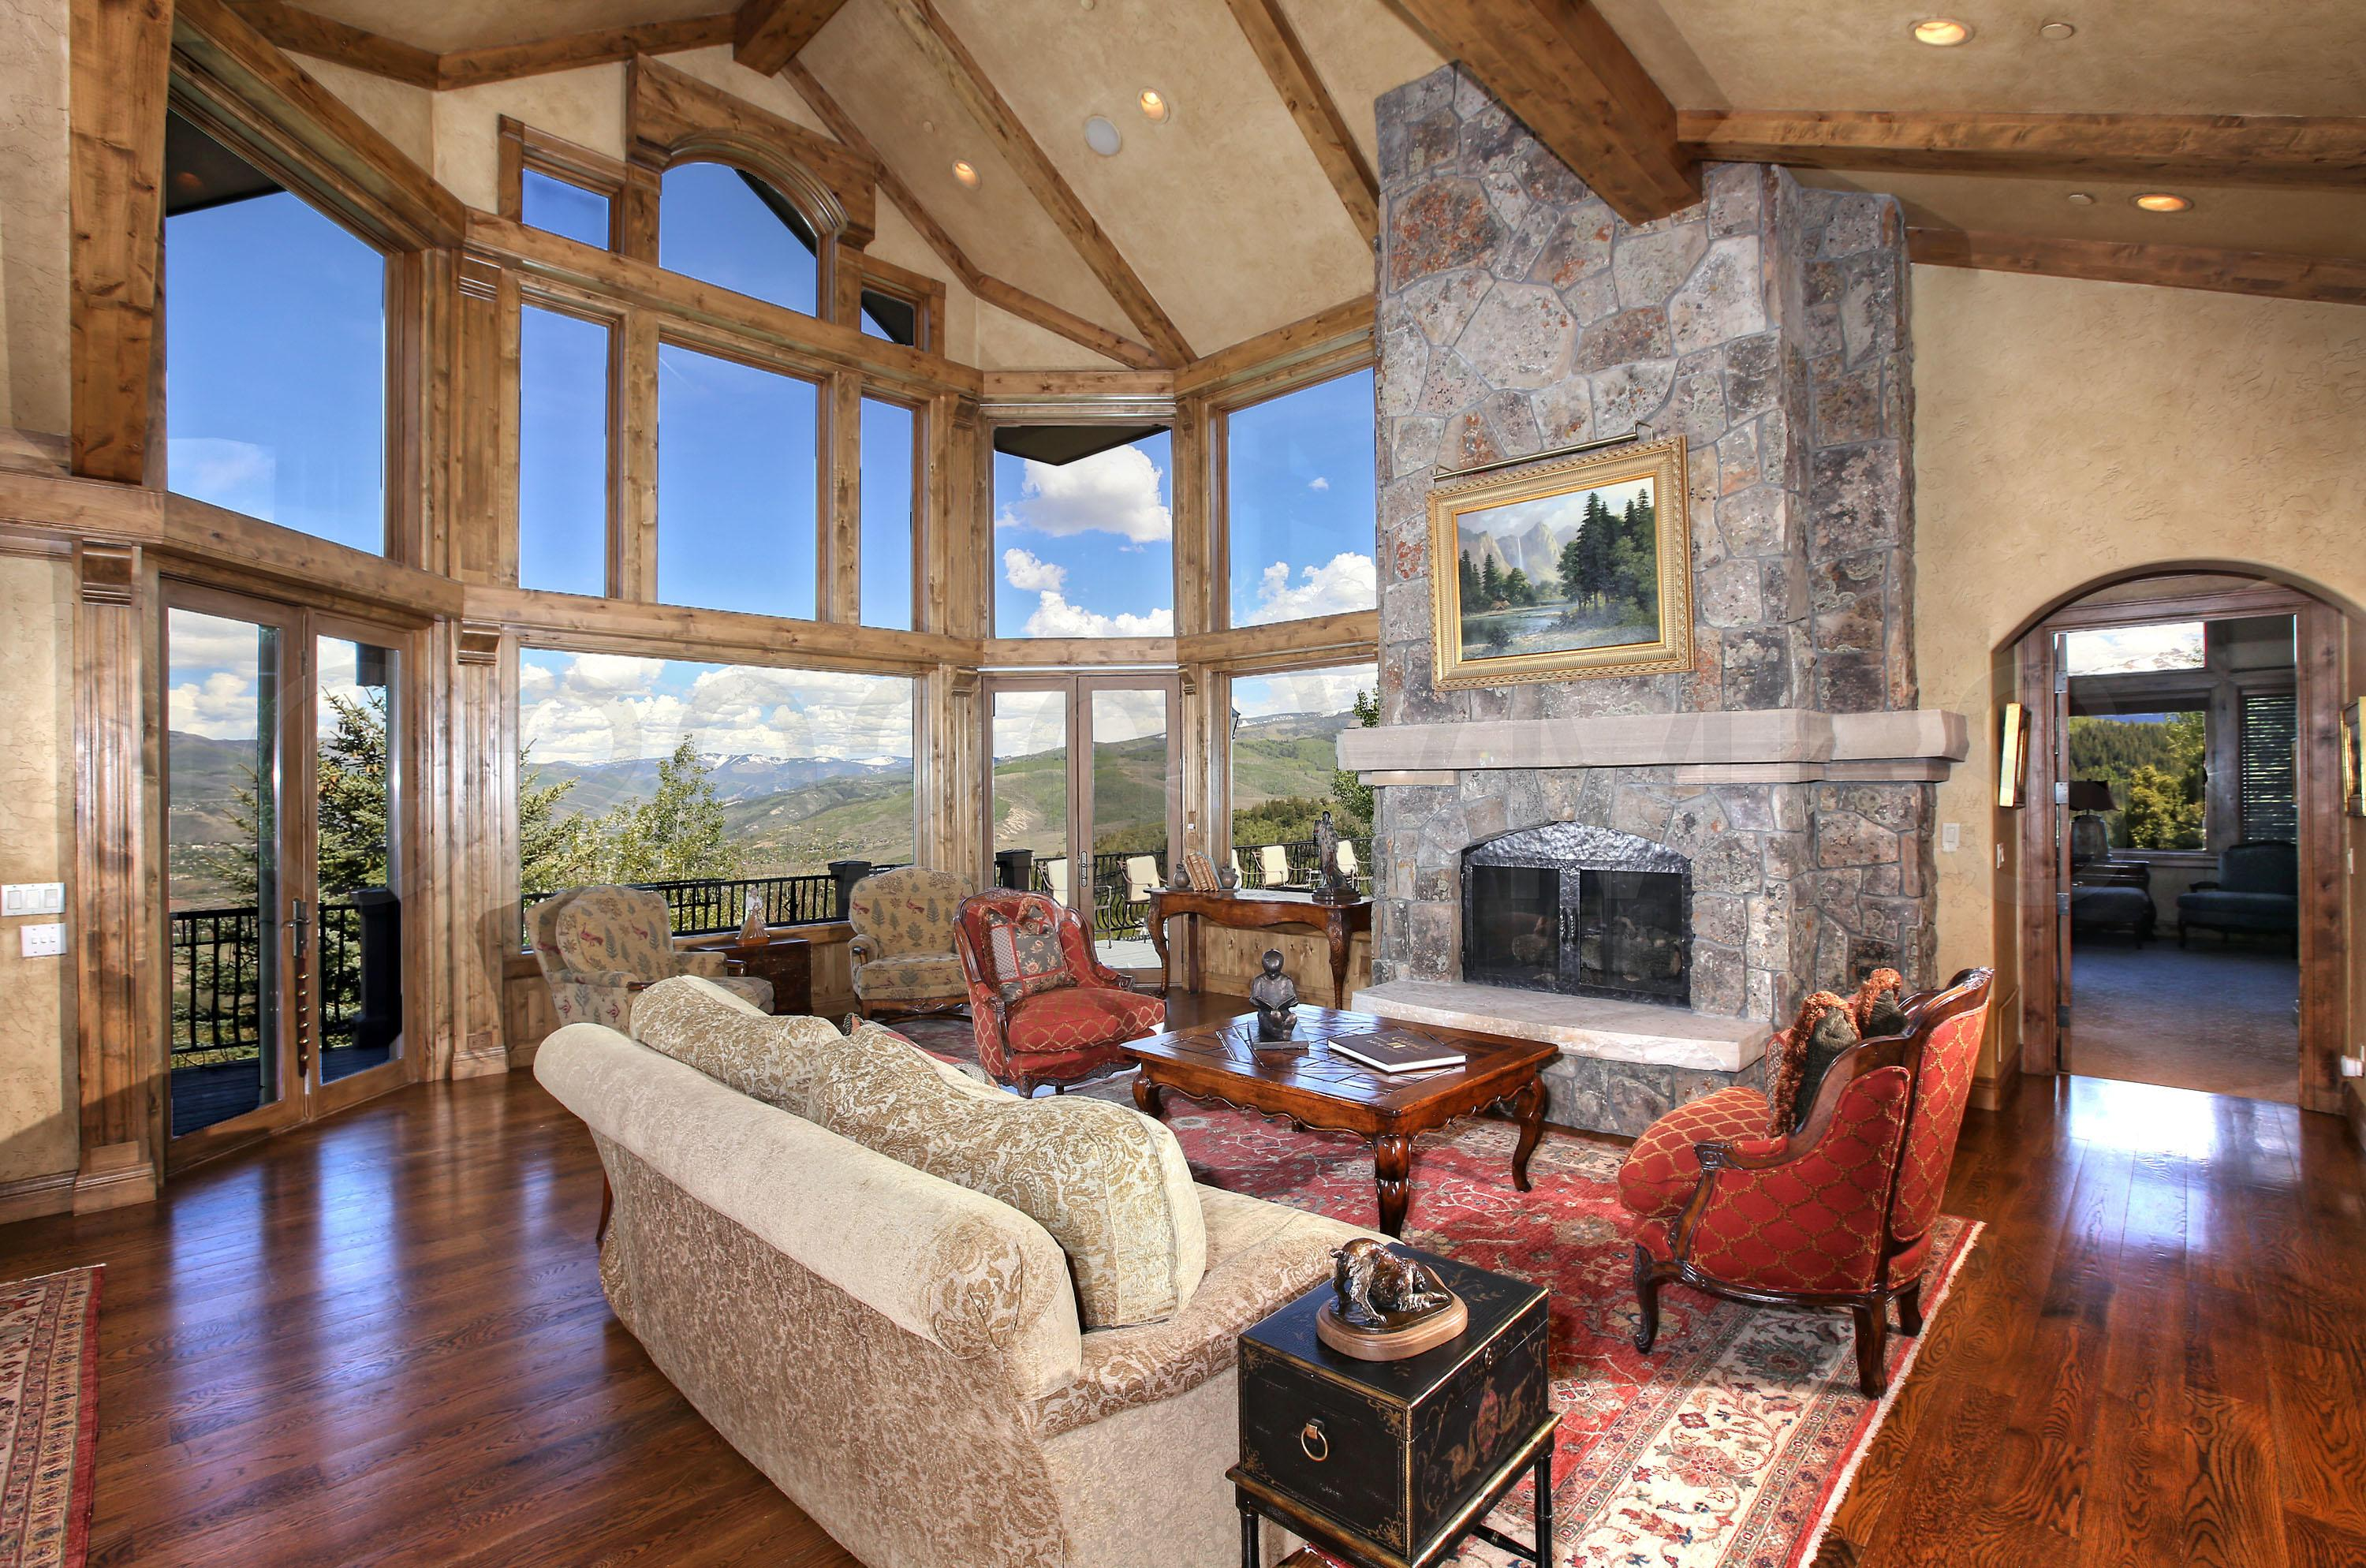 This spectacular Cordillera custom residence has it all with magnificent and unobstructed Gore and Sawatch Range views, beautiful handcrafted finishes, six spacious ensuite bedrooms, generous family living areas, private study and wonderful outdoor patios and decks. A dramatic great room with custom floor to ceiling stone fireplace, gourmet kitchen and a large hearth room all compliment a remarkable mountain estate. Located close to the Short Course. This residence is a must see.